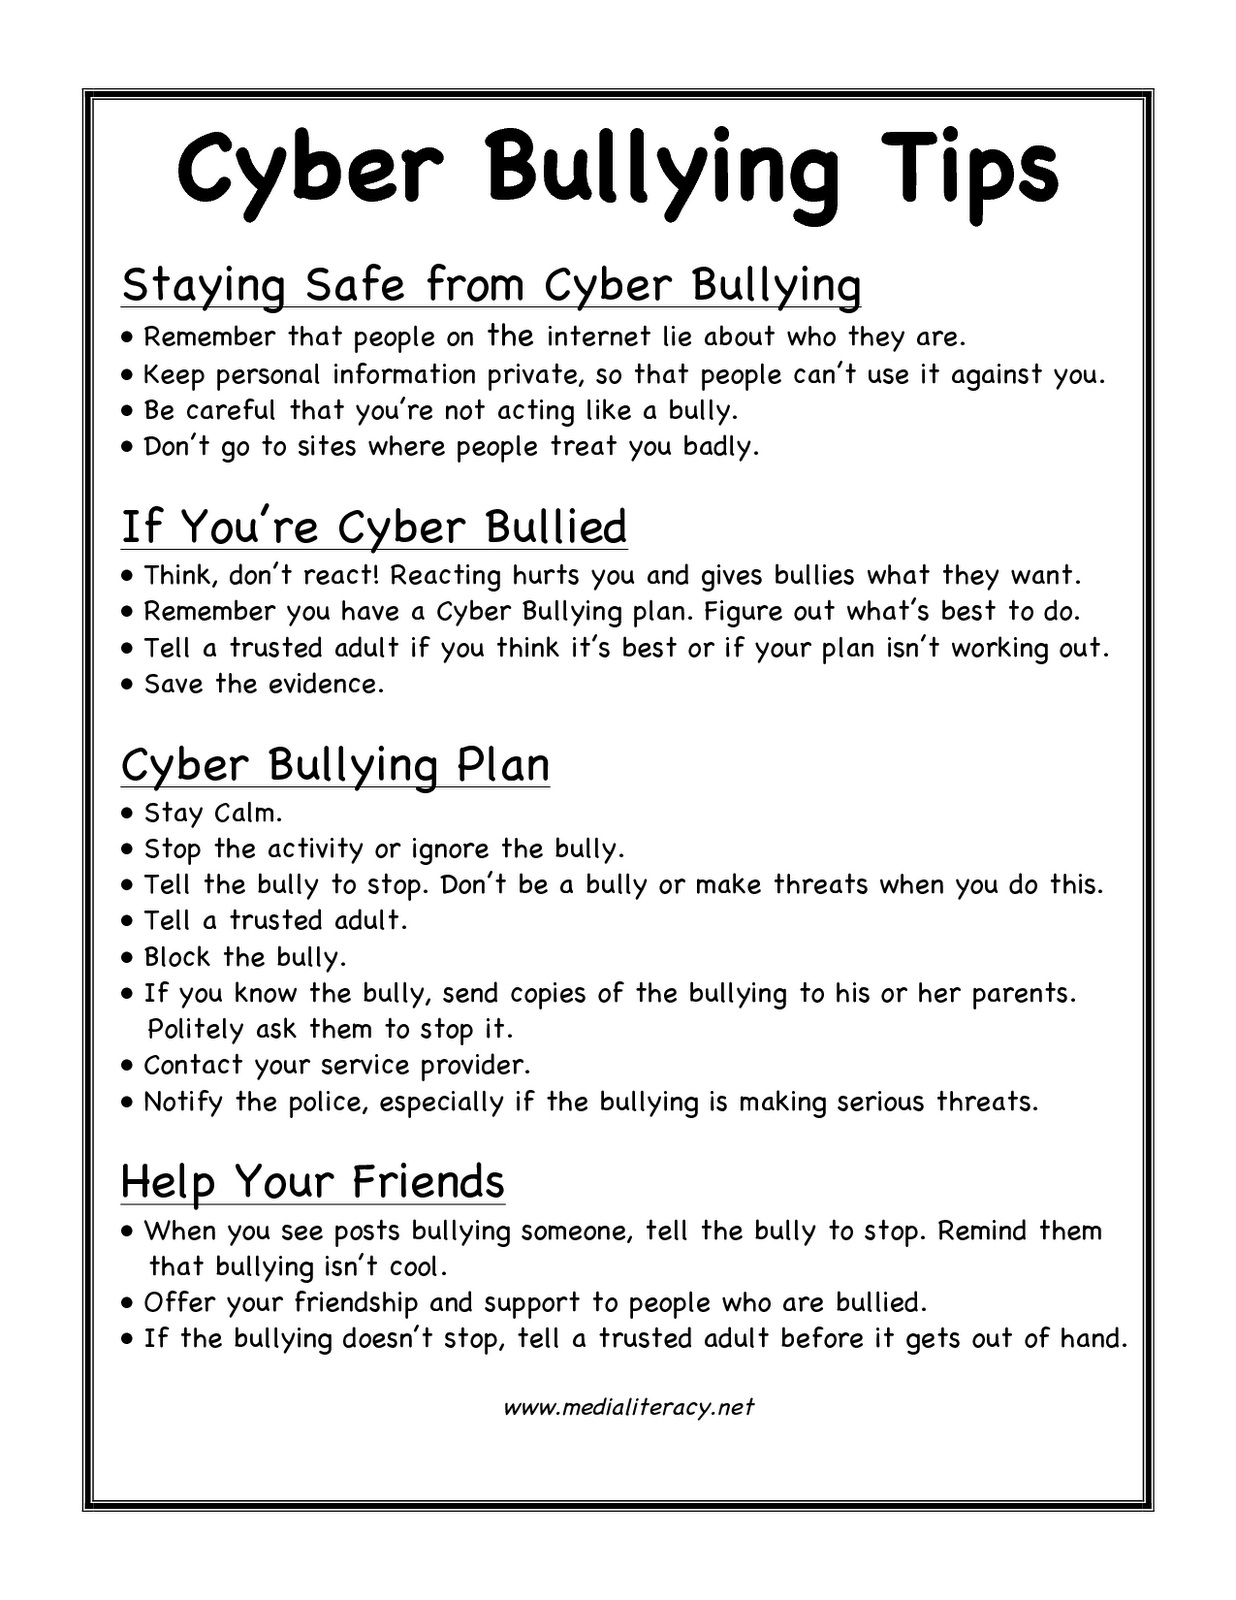 Evidence Antibullyingblogspot From September 5